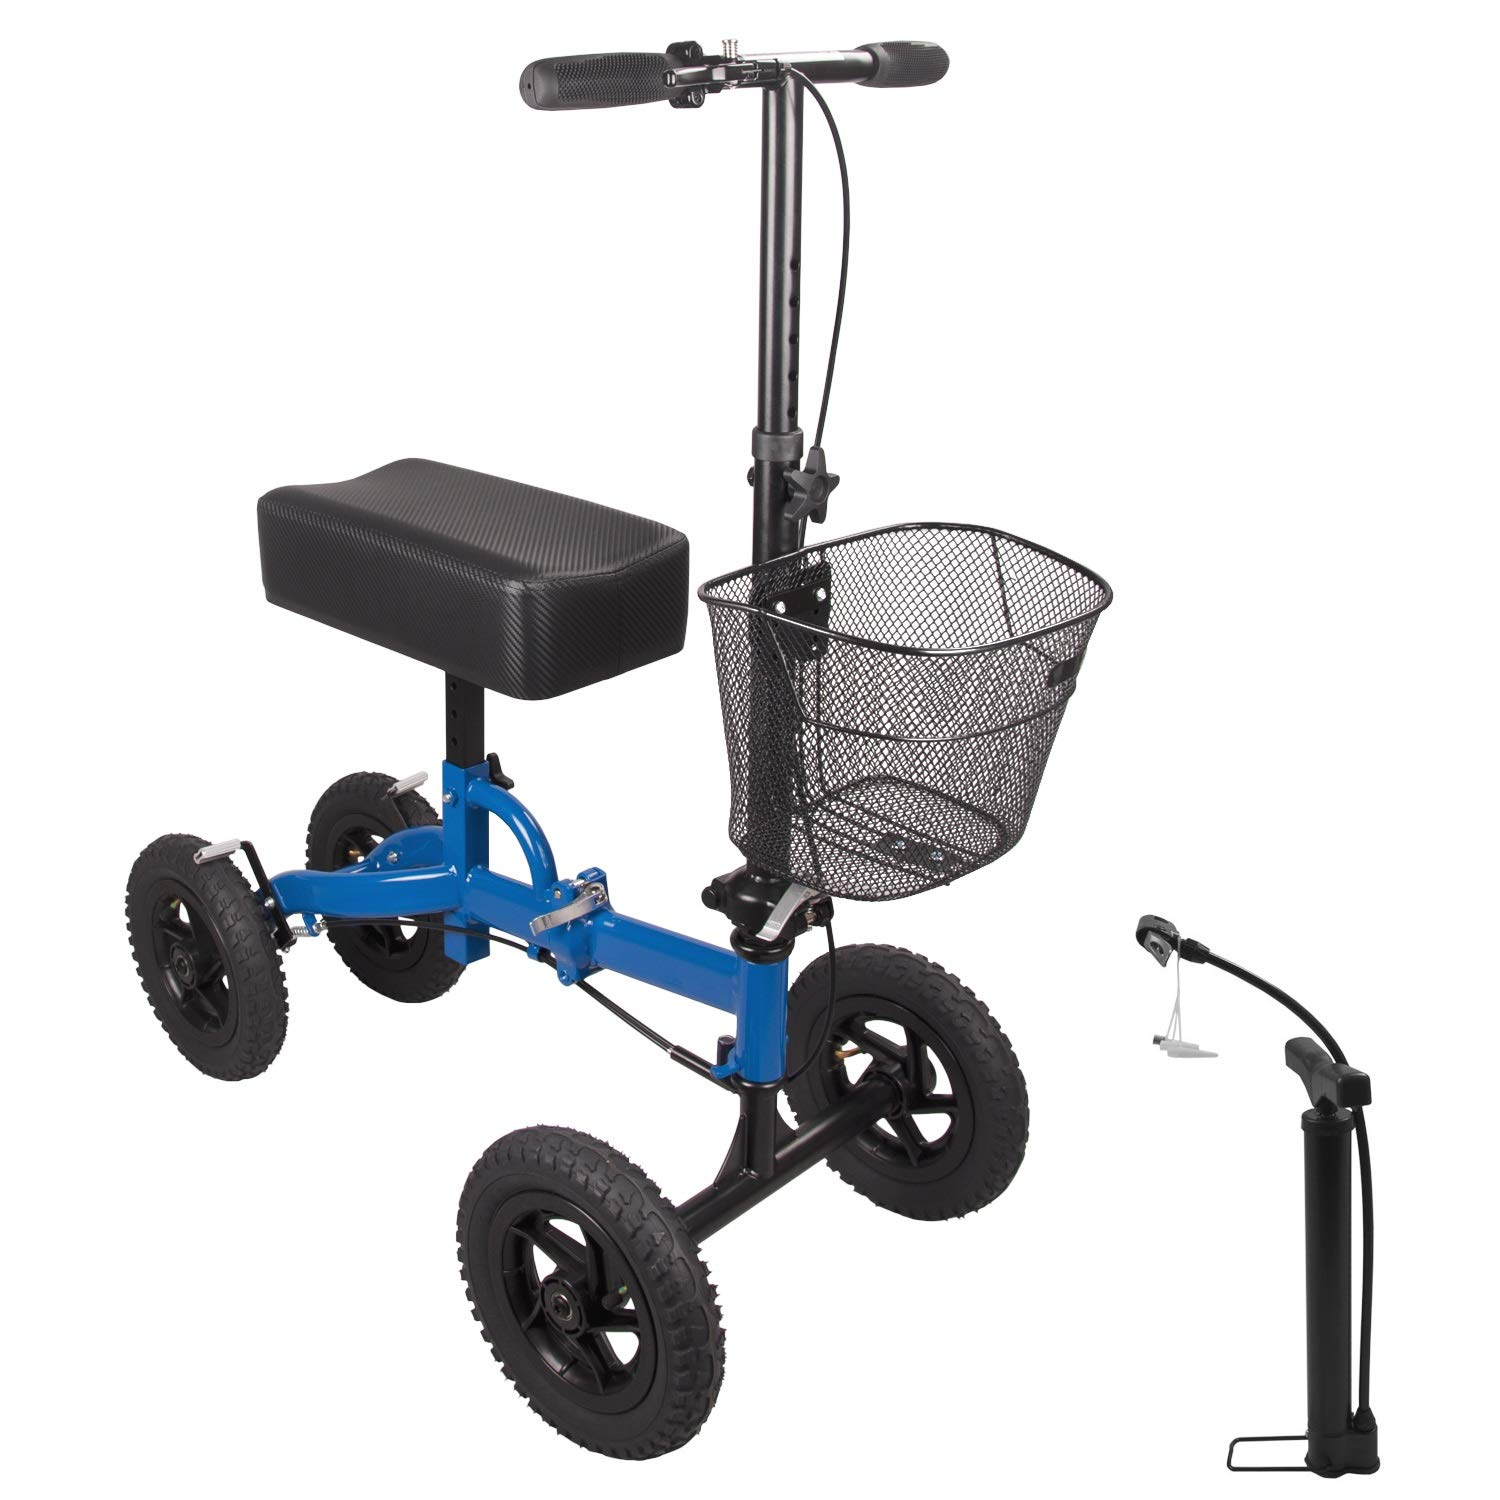 H&A All Terrain Rolling Knee Walker for Leg and Foot Injuries Crutch Steerable Alternative Medical Knee Scooter with Free Tire Pump (Blue)